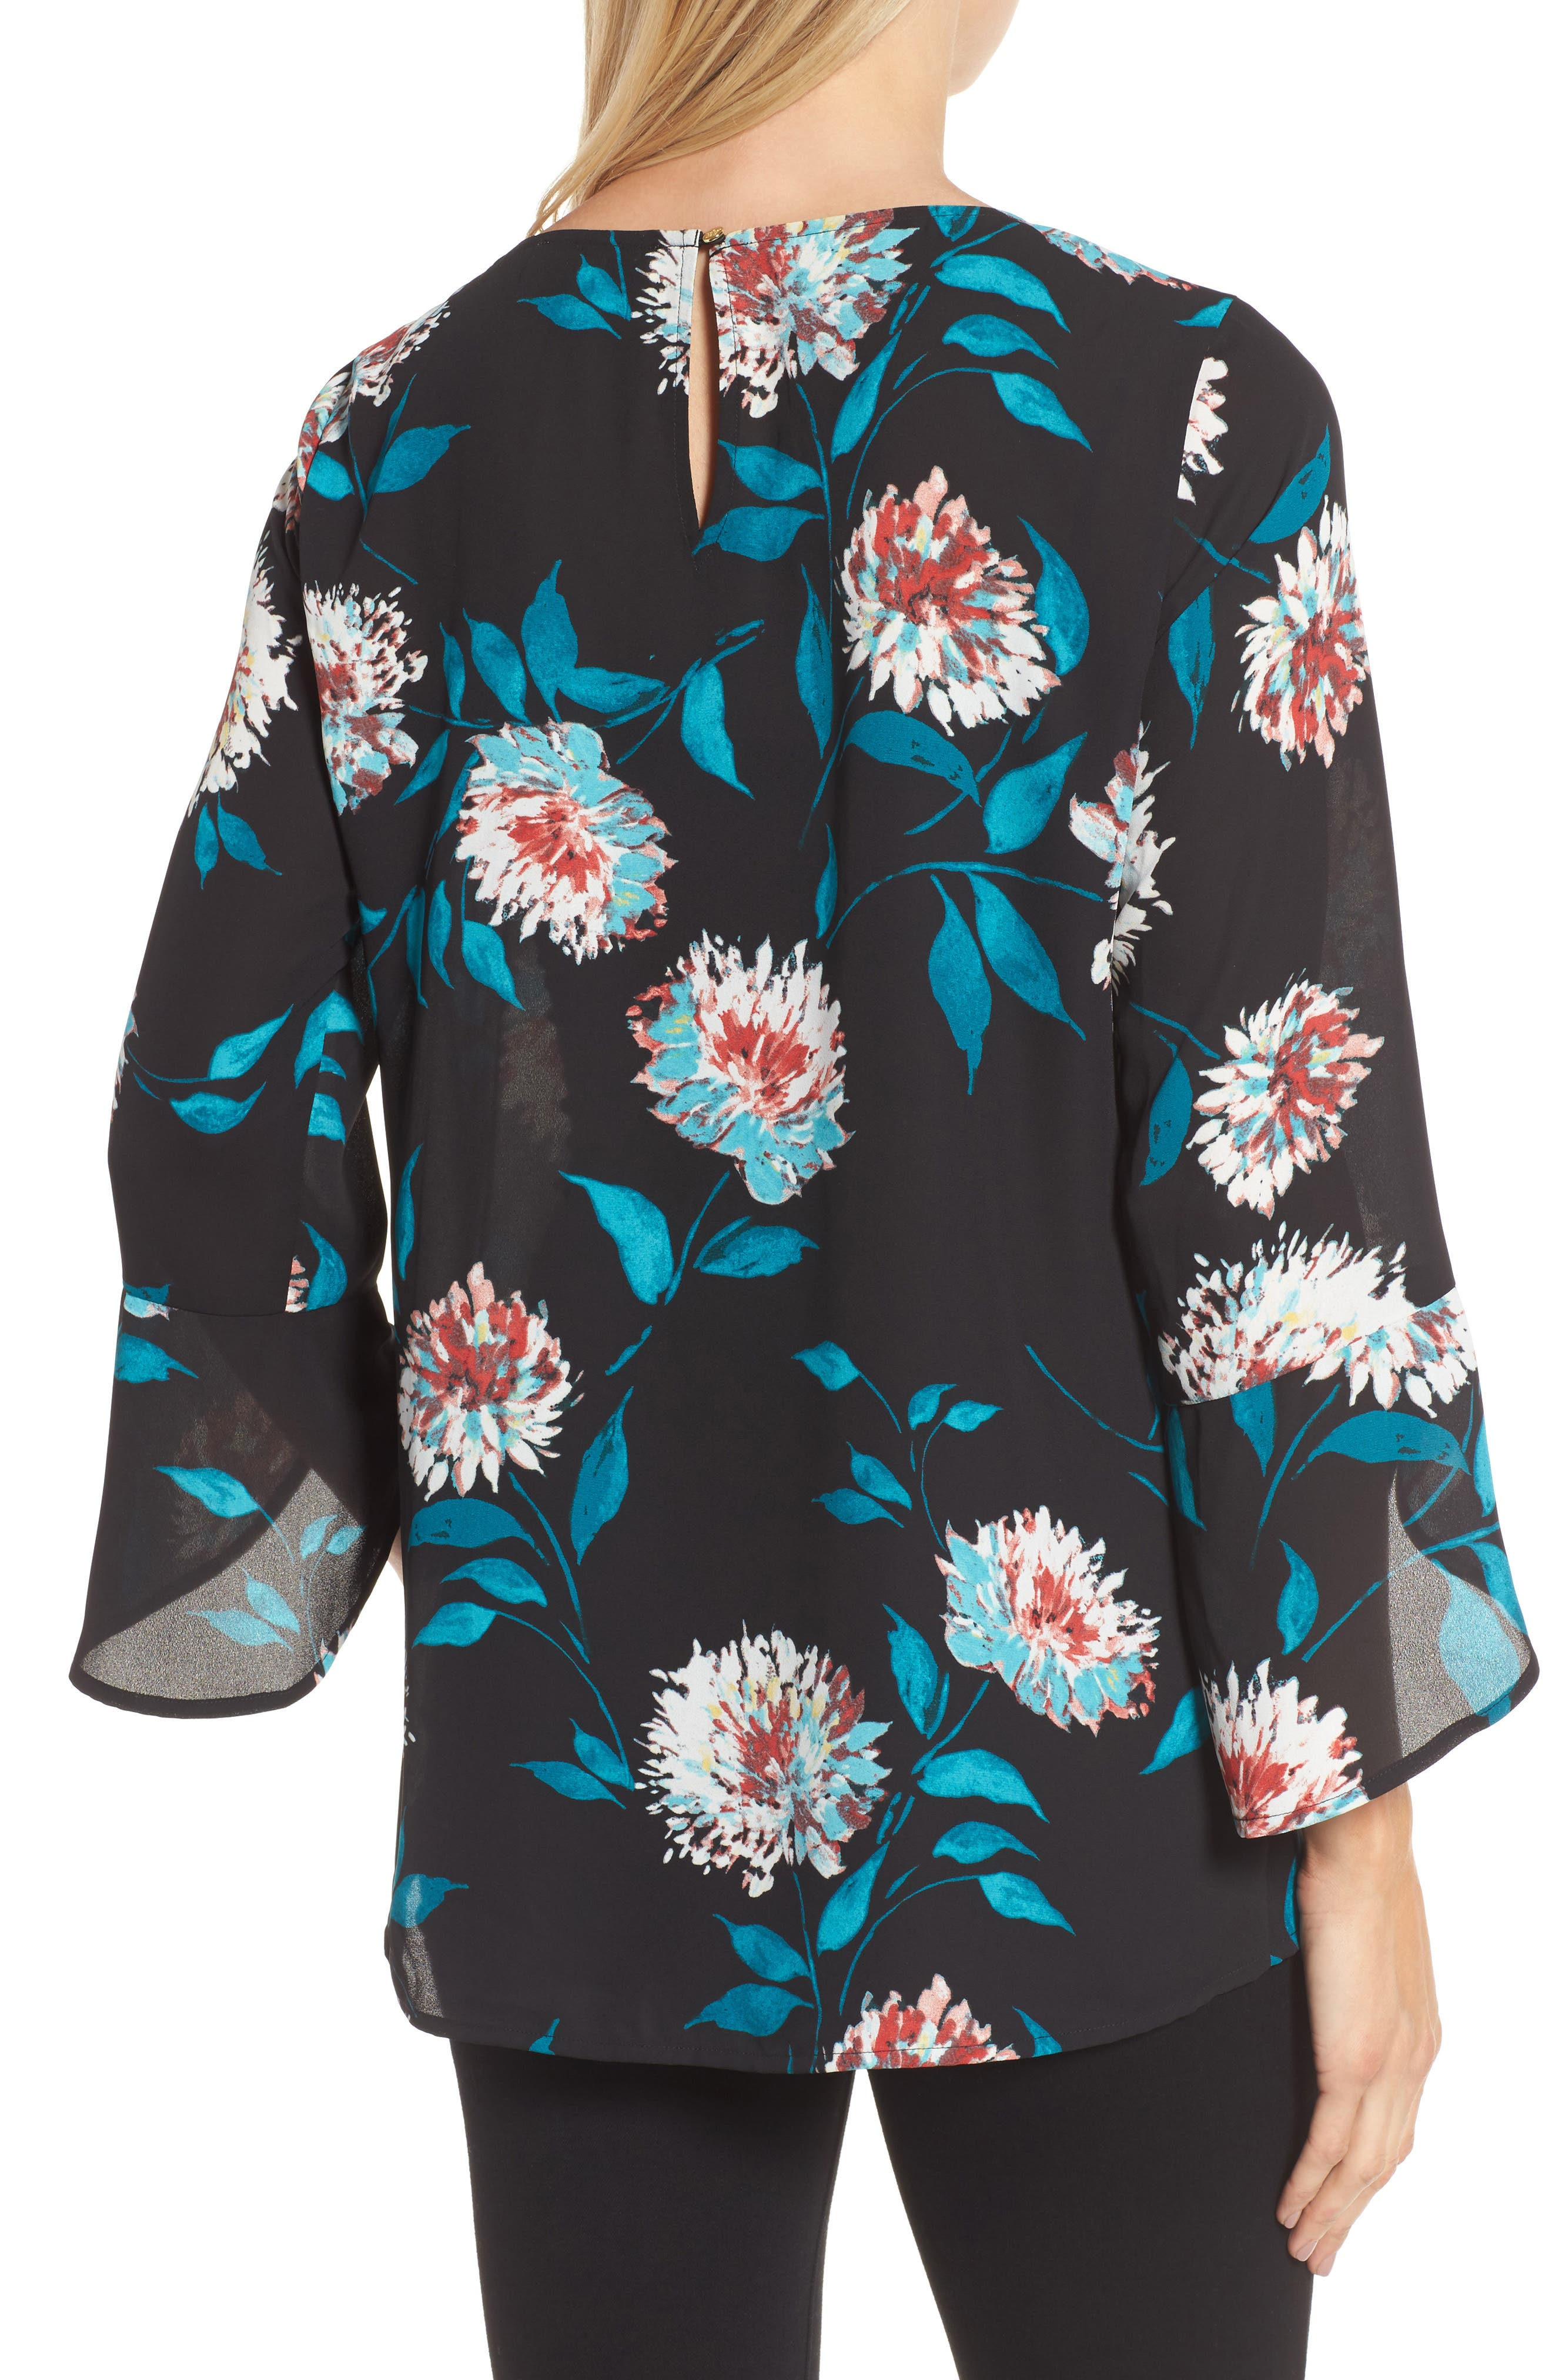 Kyoto Blossoms Bell Sleeve Blouse,                             Alternate thumbnail 2, color,                             006